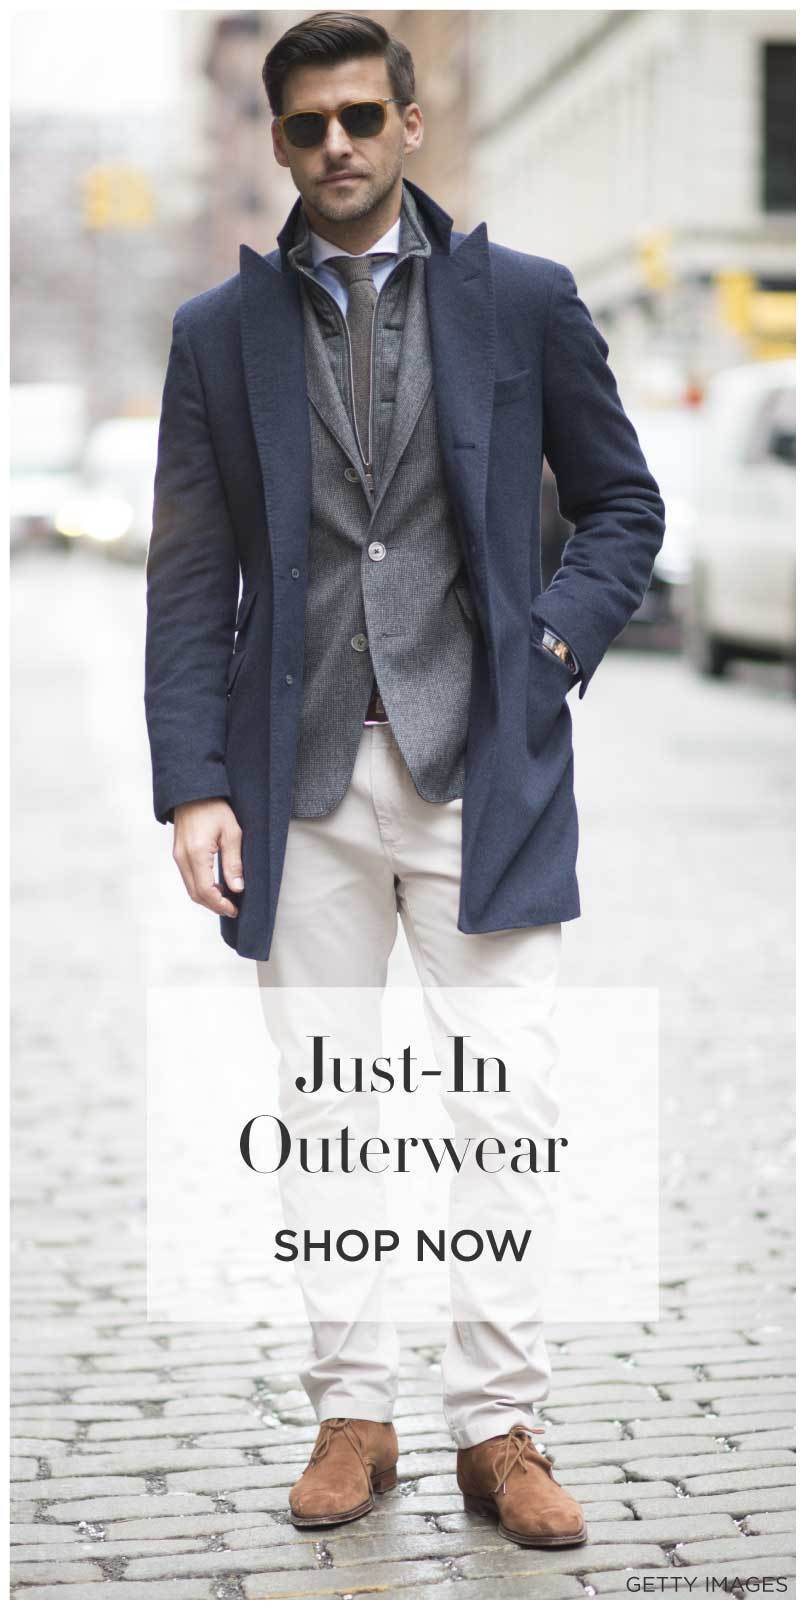 Just in Outerwear